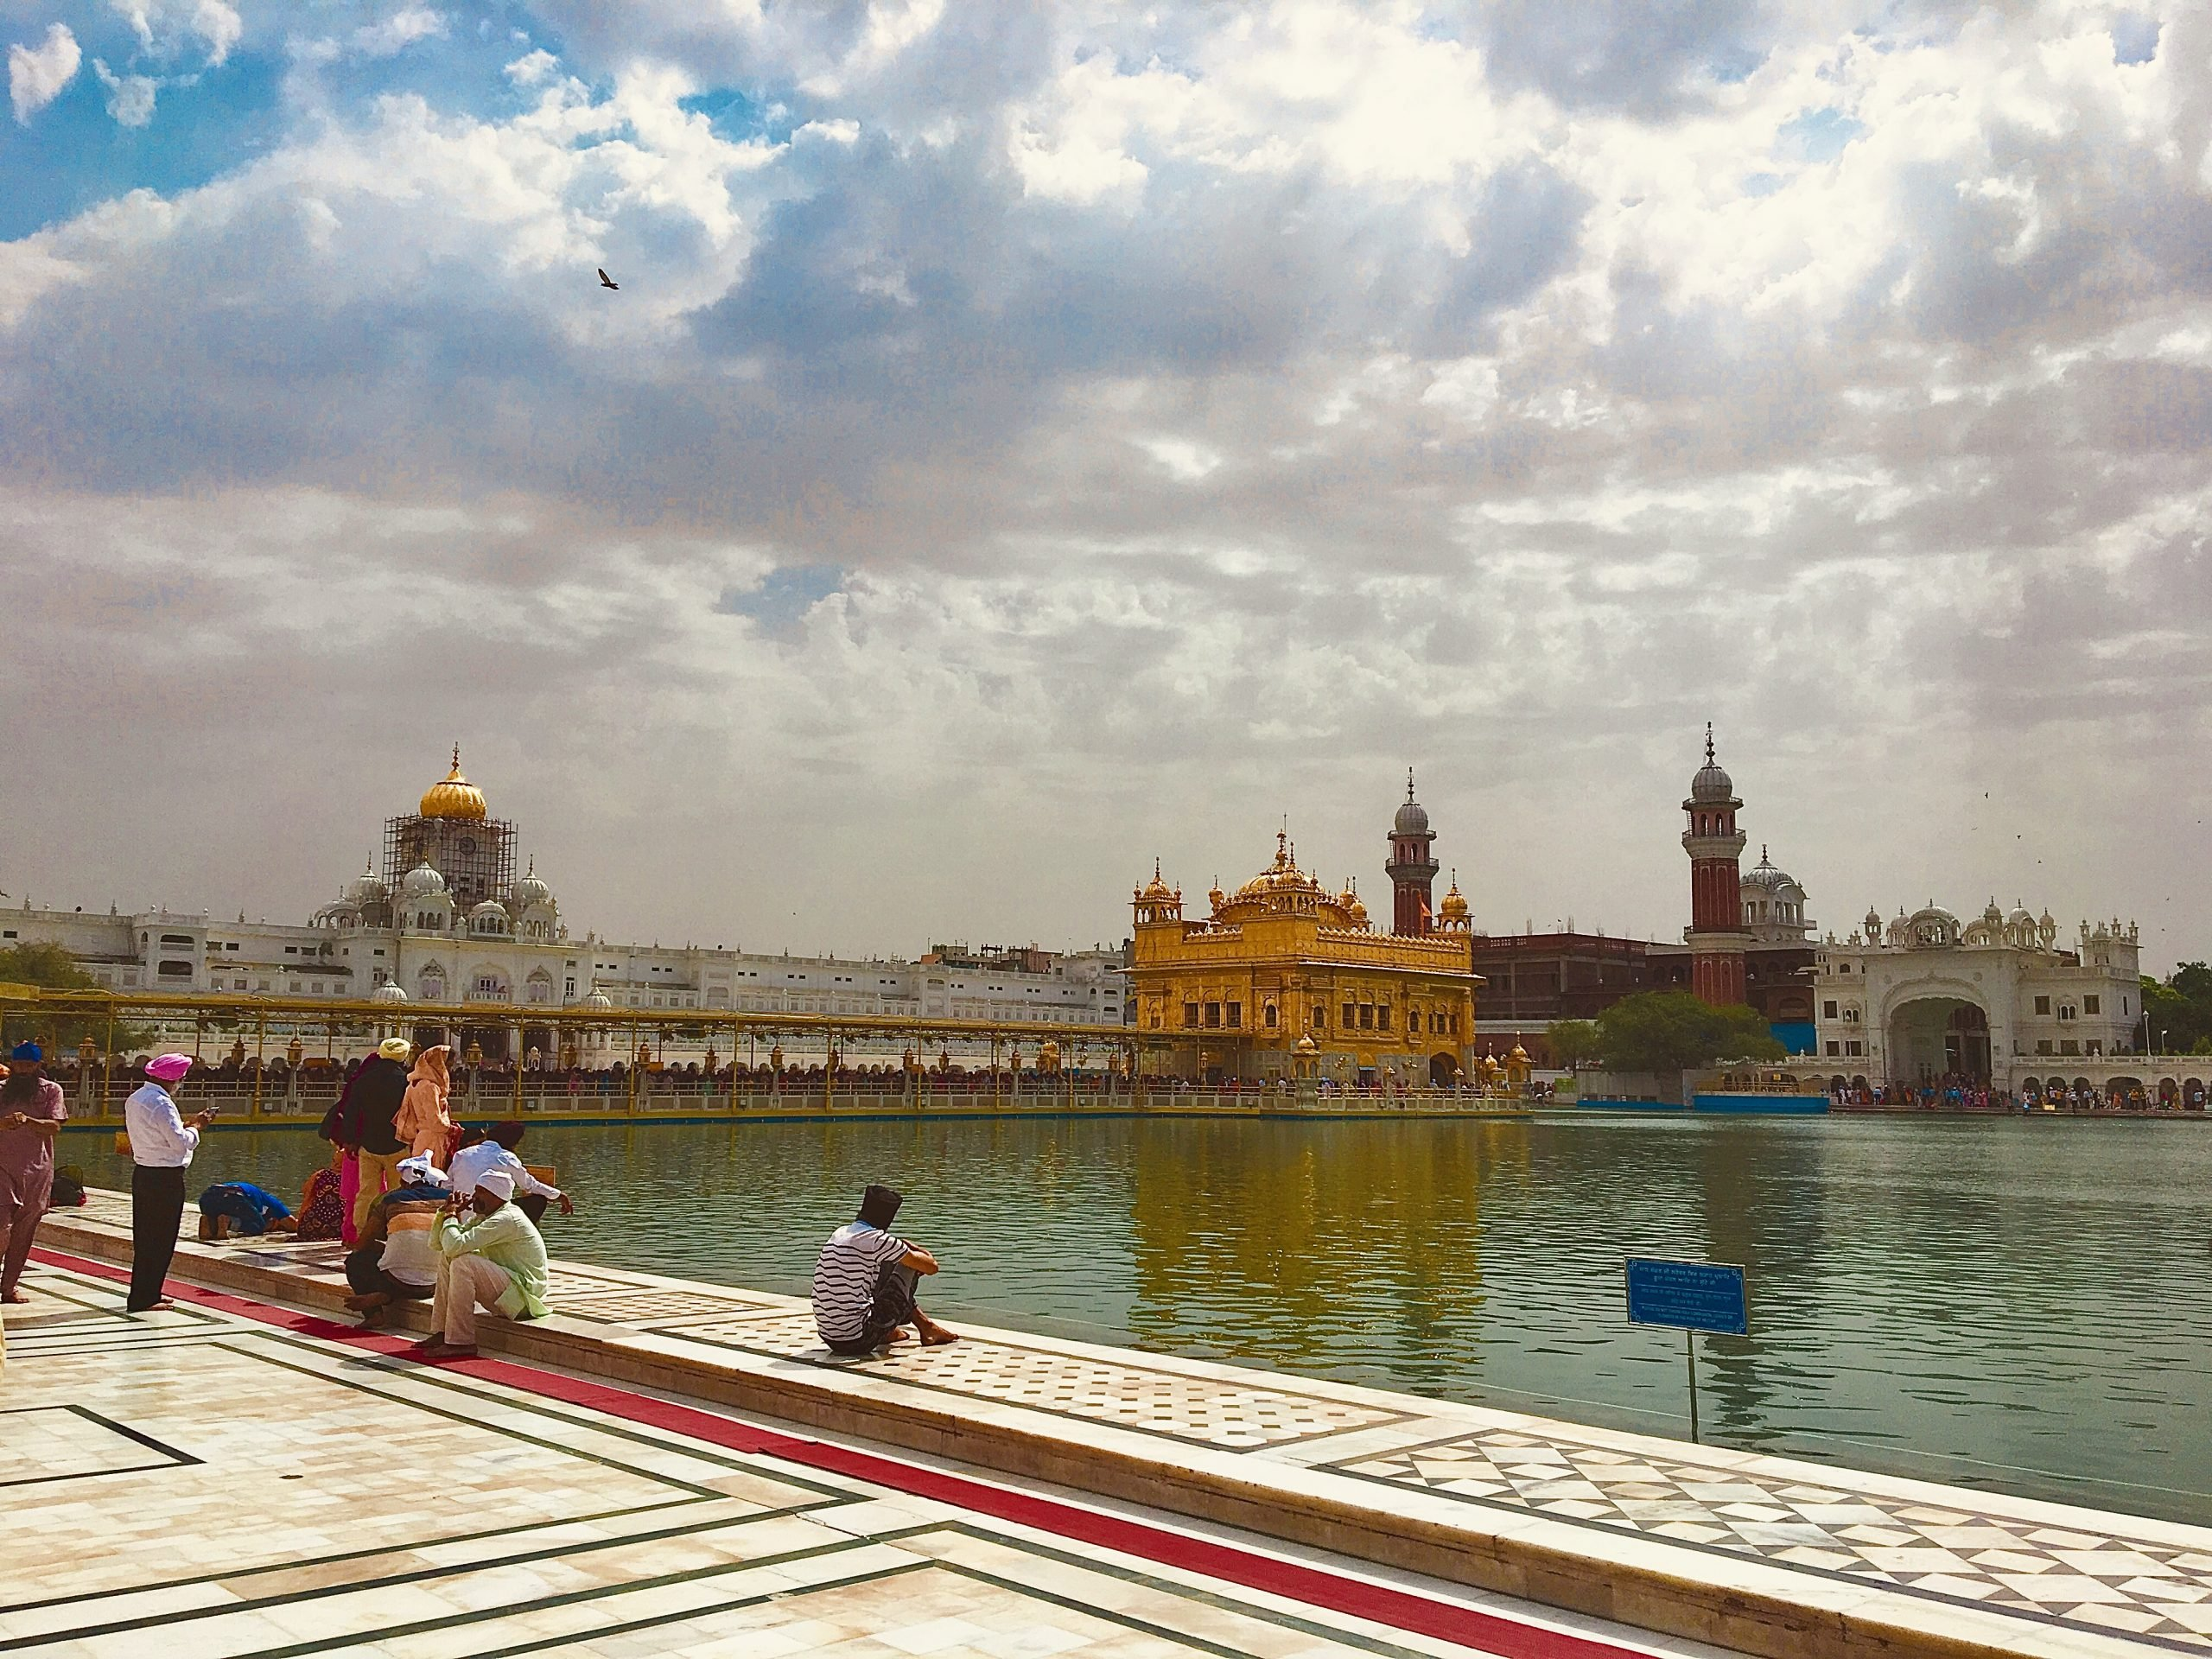 An Overview of Golden Temple in Amritsar